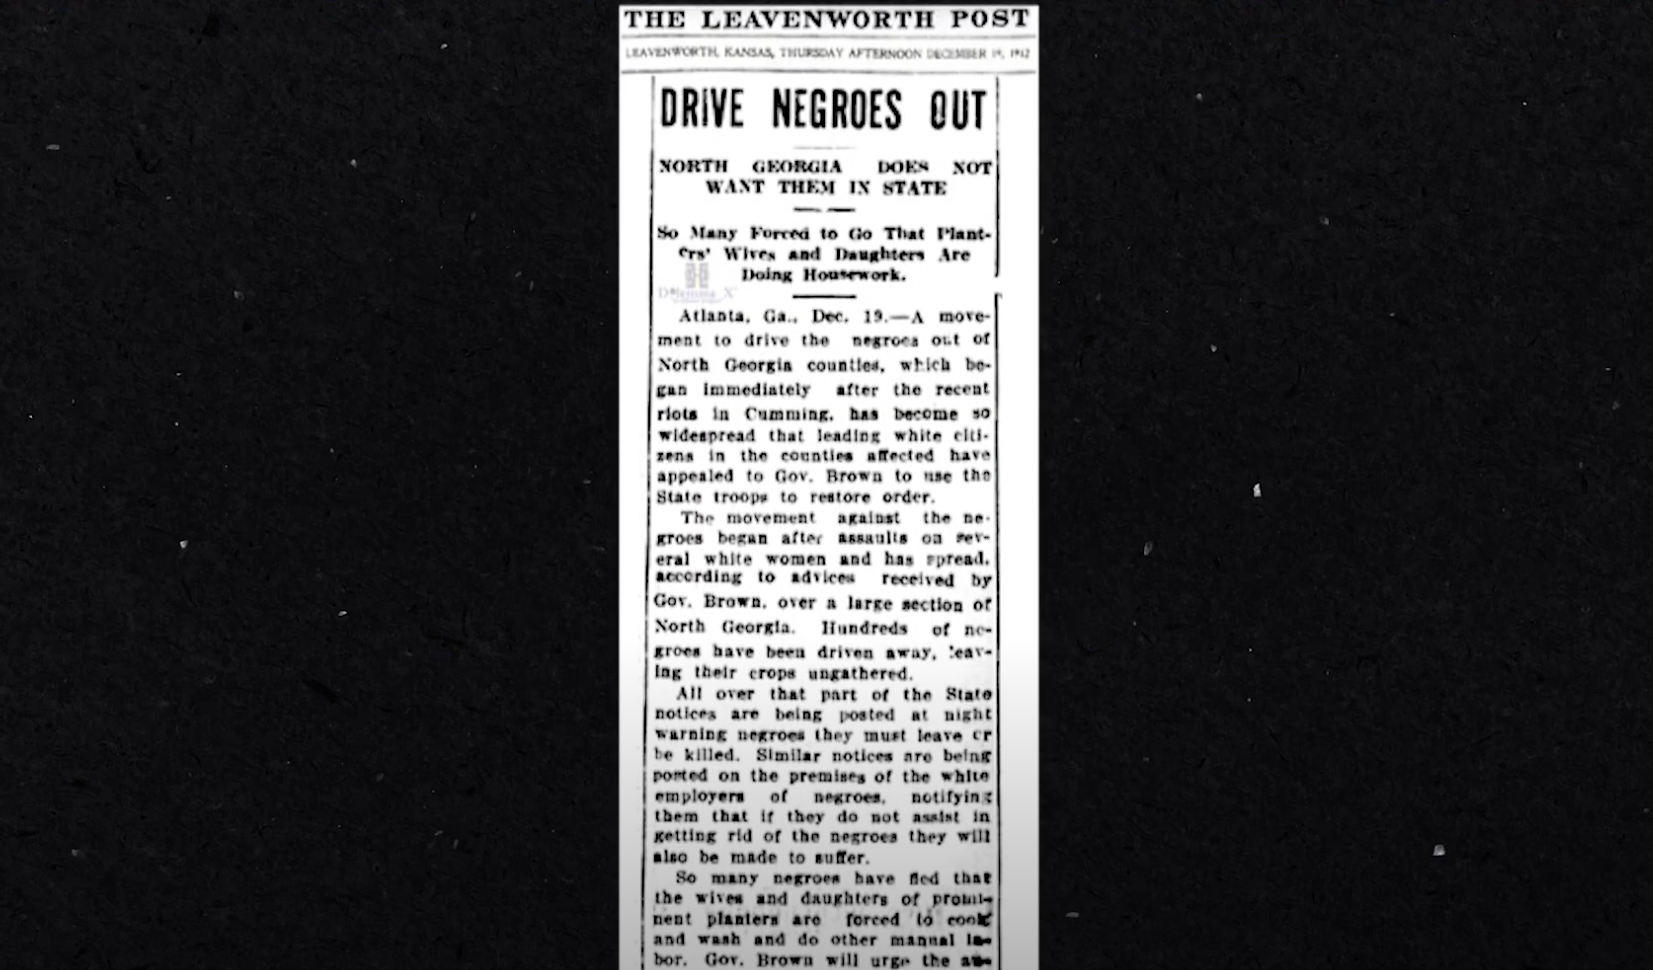 """A report in The Leavenworth Post with the headline """"Drive Negroes Out, North Georgia Does Not Want Them In State"""""""